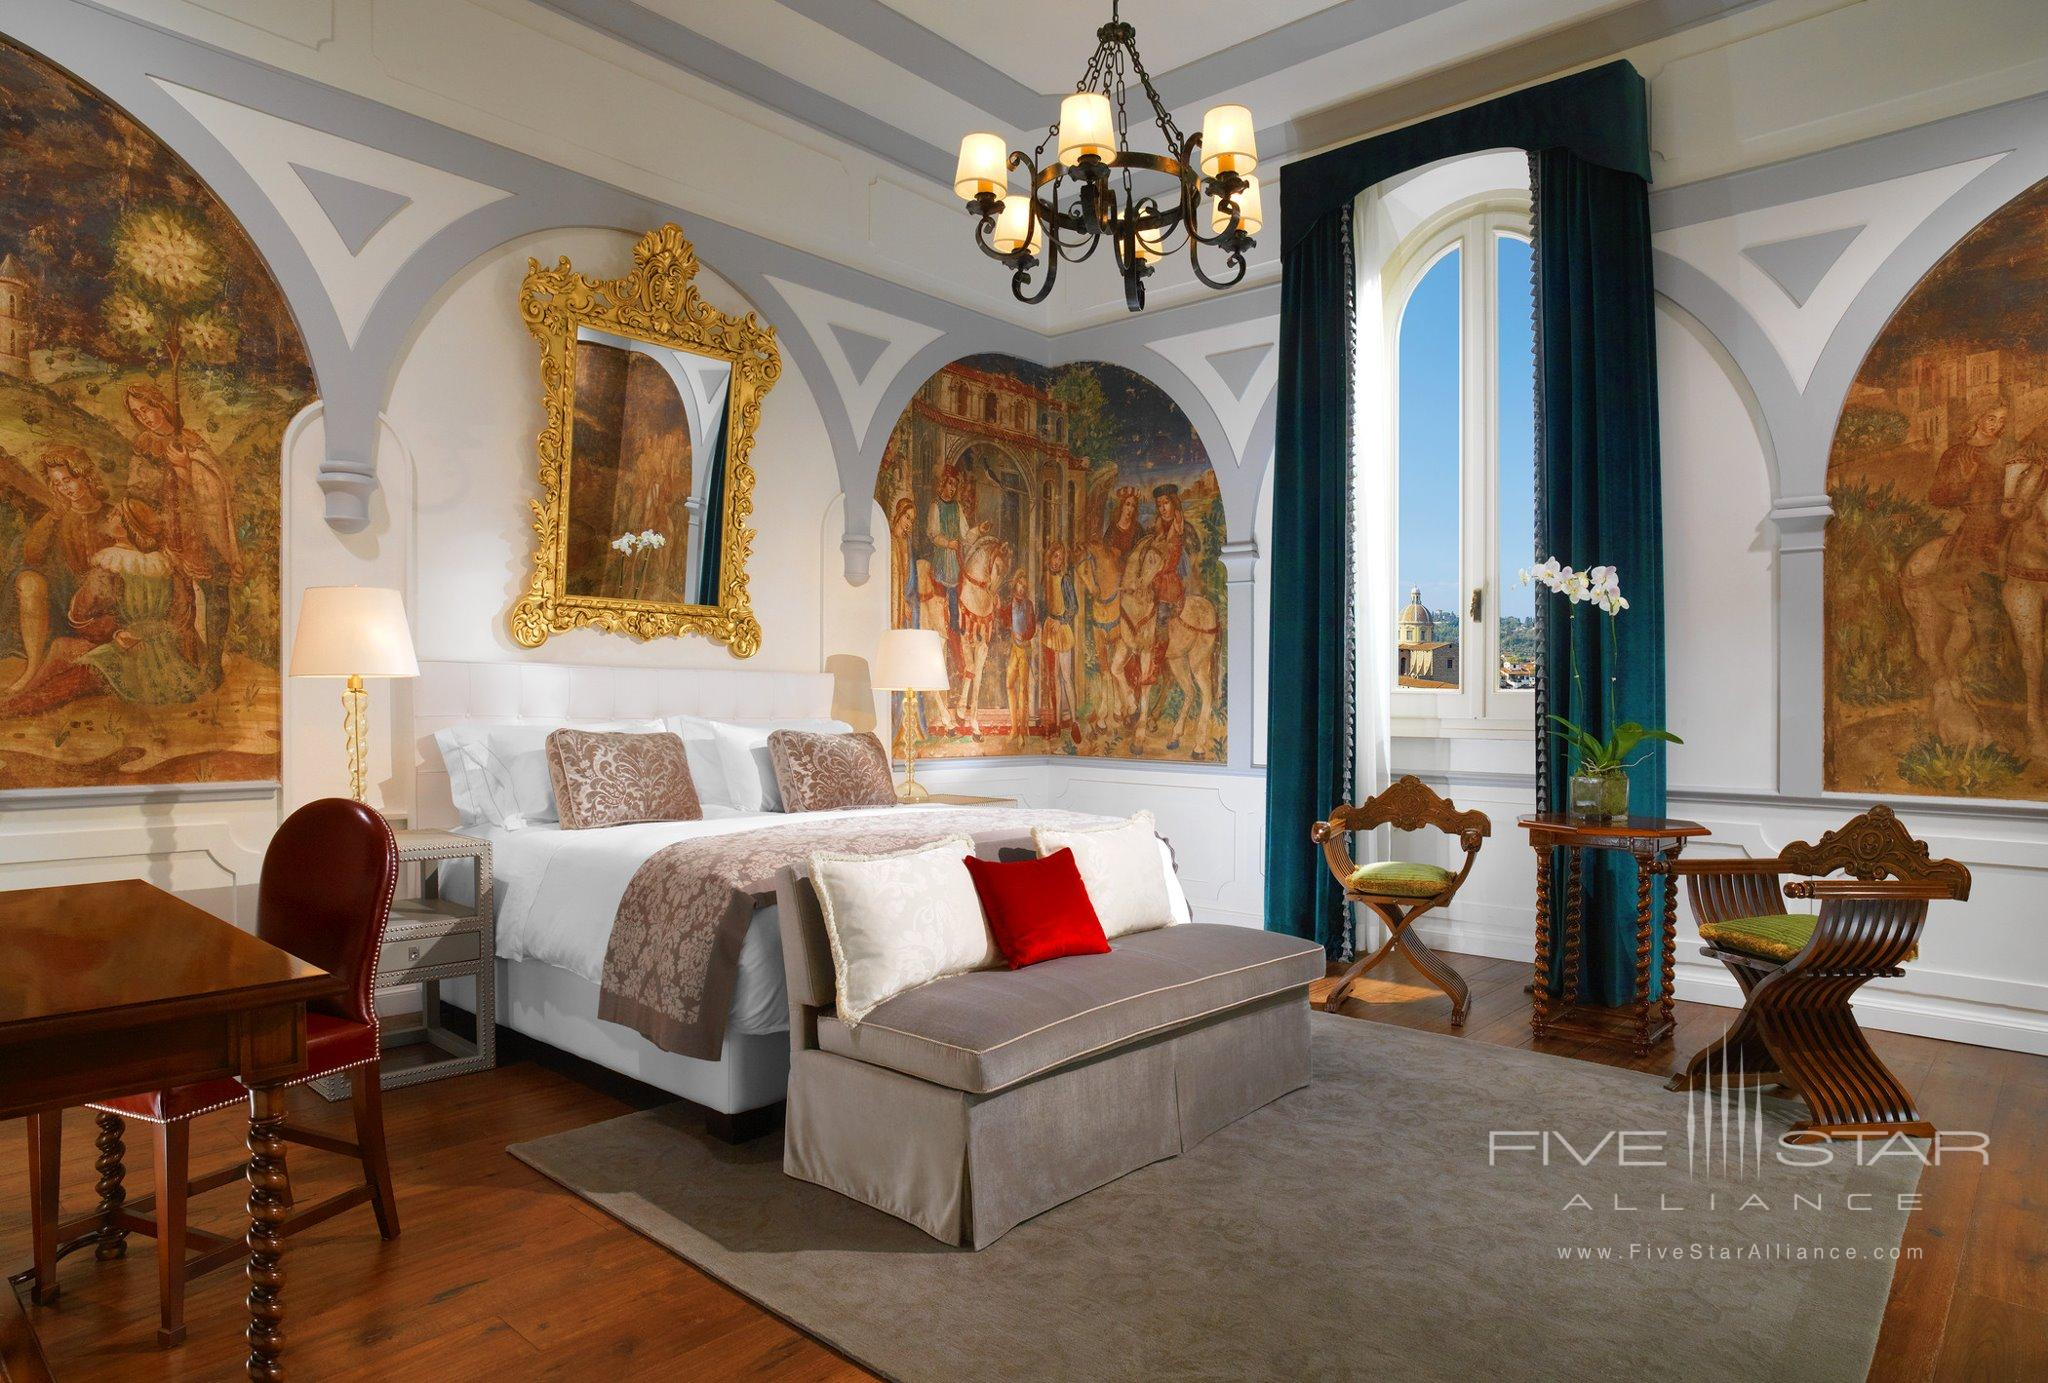 The St. Regis Florence Arno River View Room